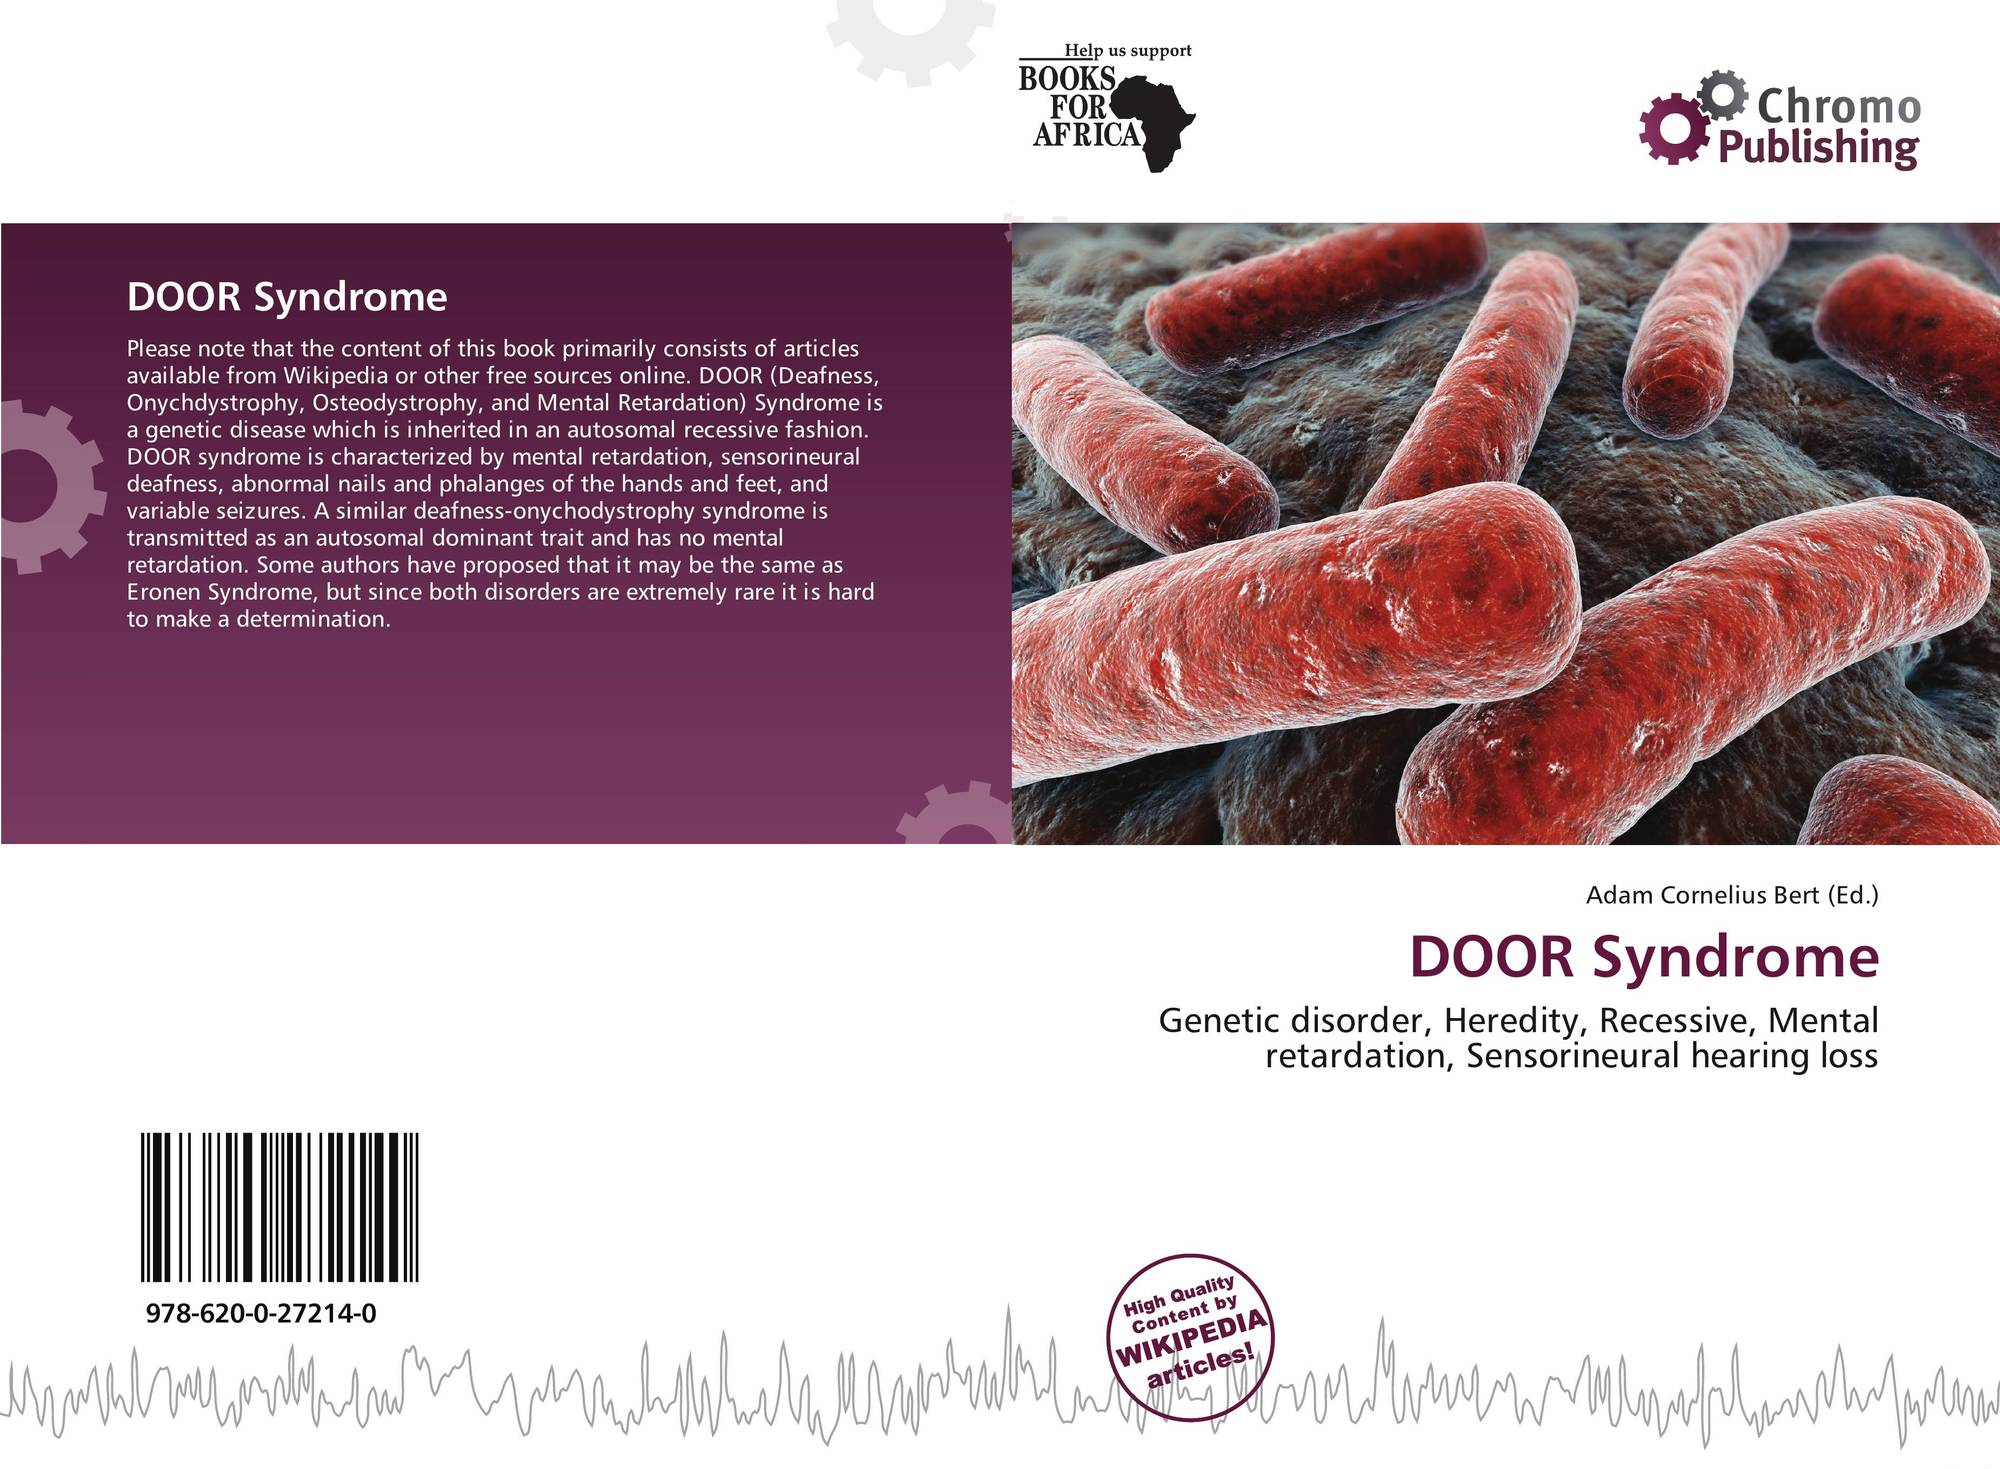 Bookcover of DOOR Syndrome  sc 1 st  MoreBooks! & DOOR Syndrome 978-620-0-27214-0 620027214X 9786200272140